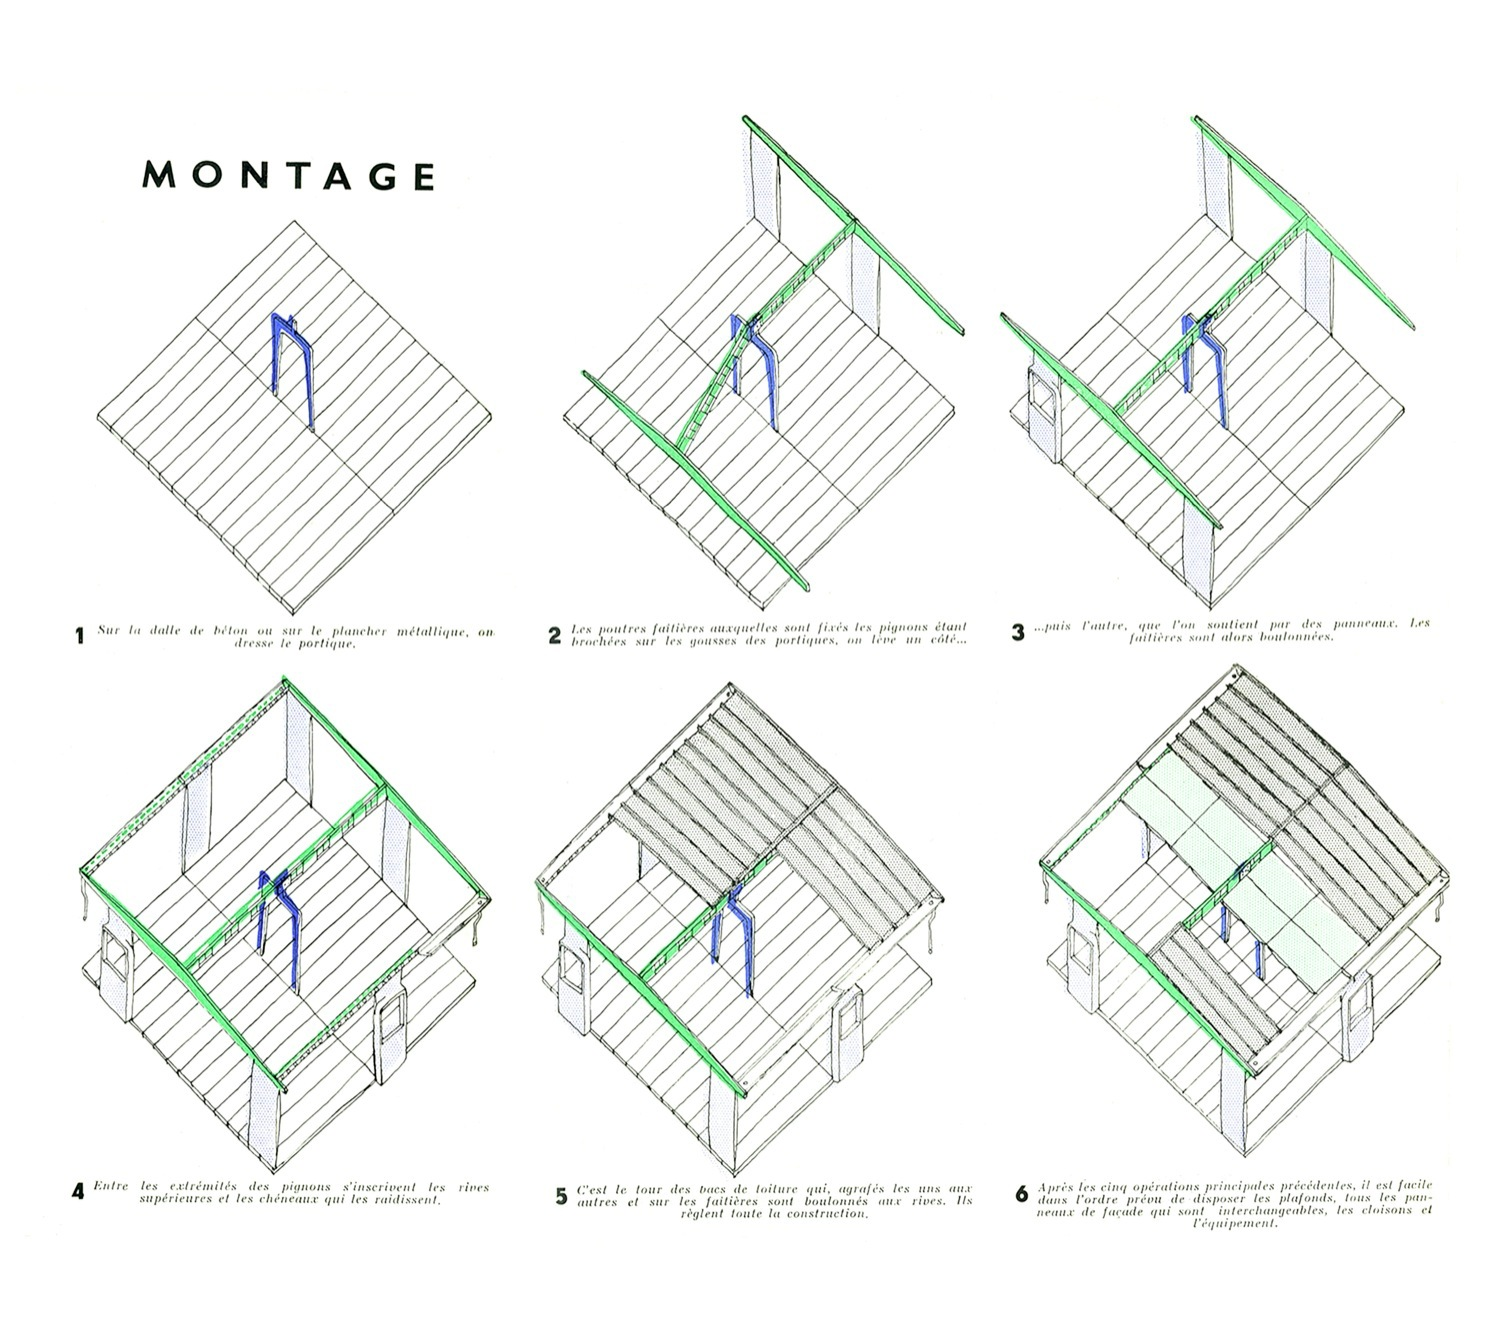 Gallery of 39 jean prouv architecture 39 at the galerie patrick seguin 3 - Jean prouve architecture ...